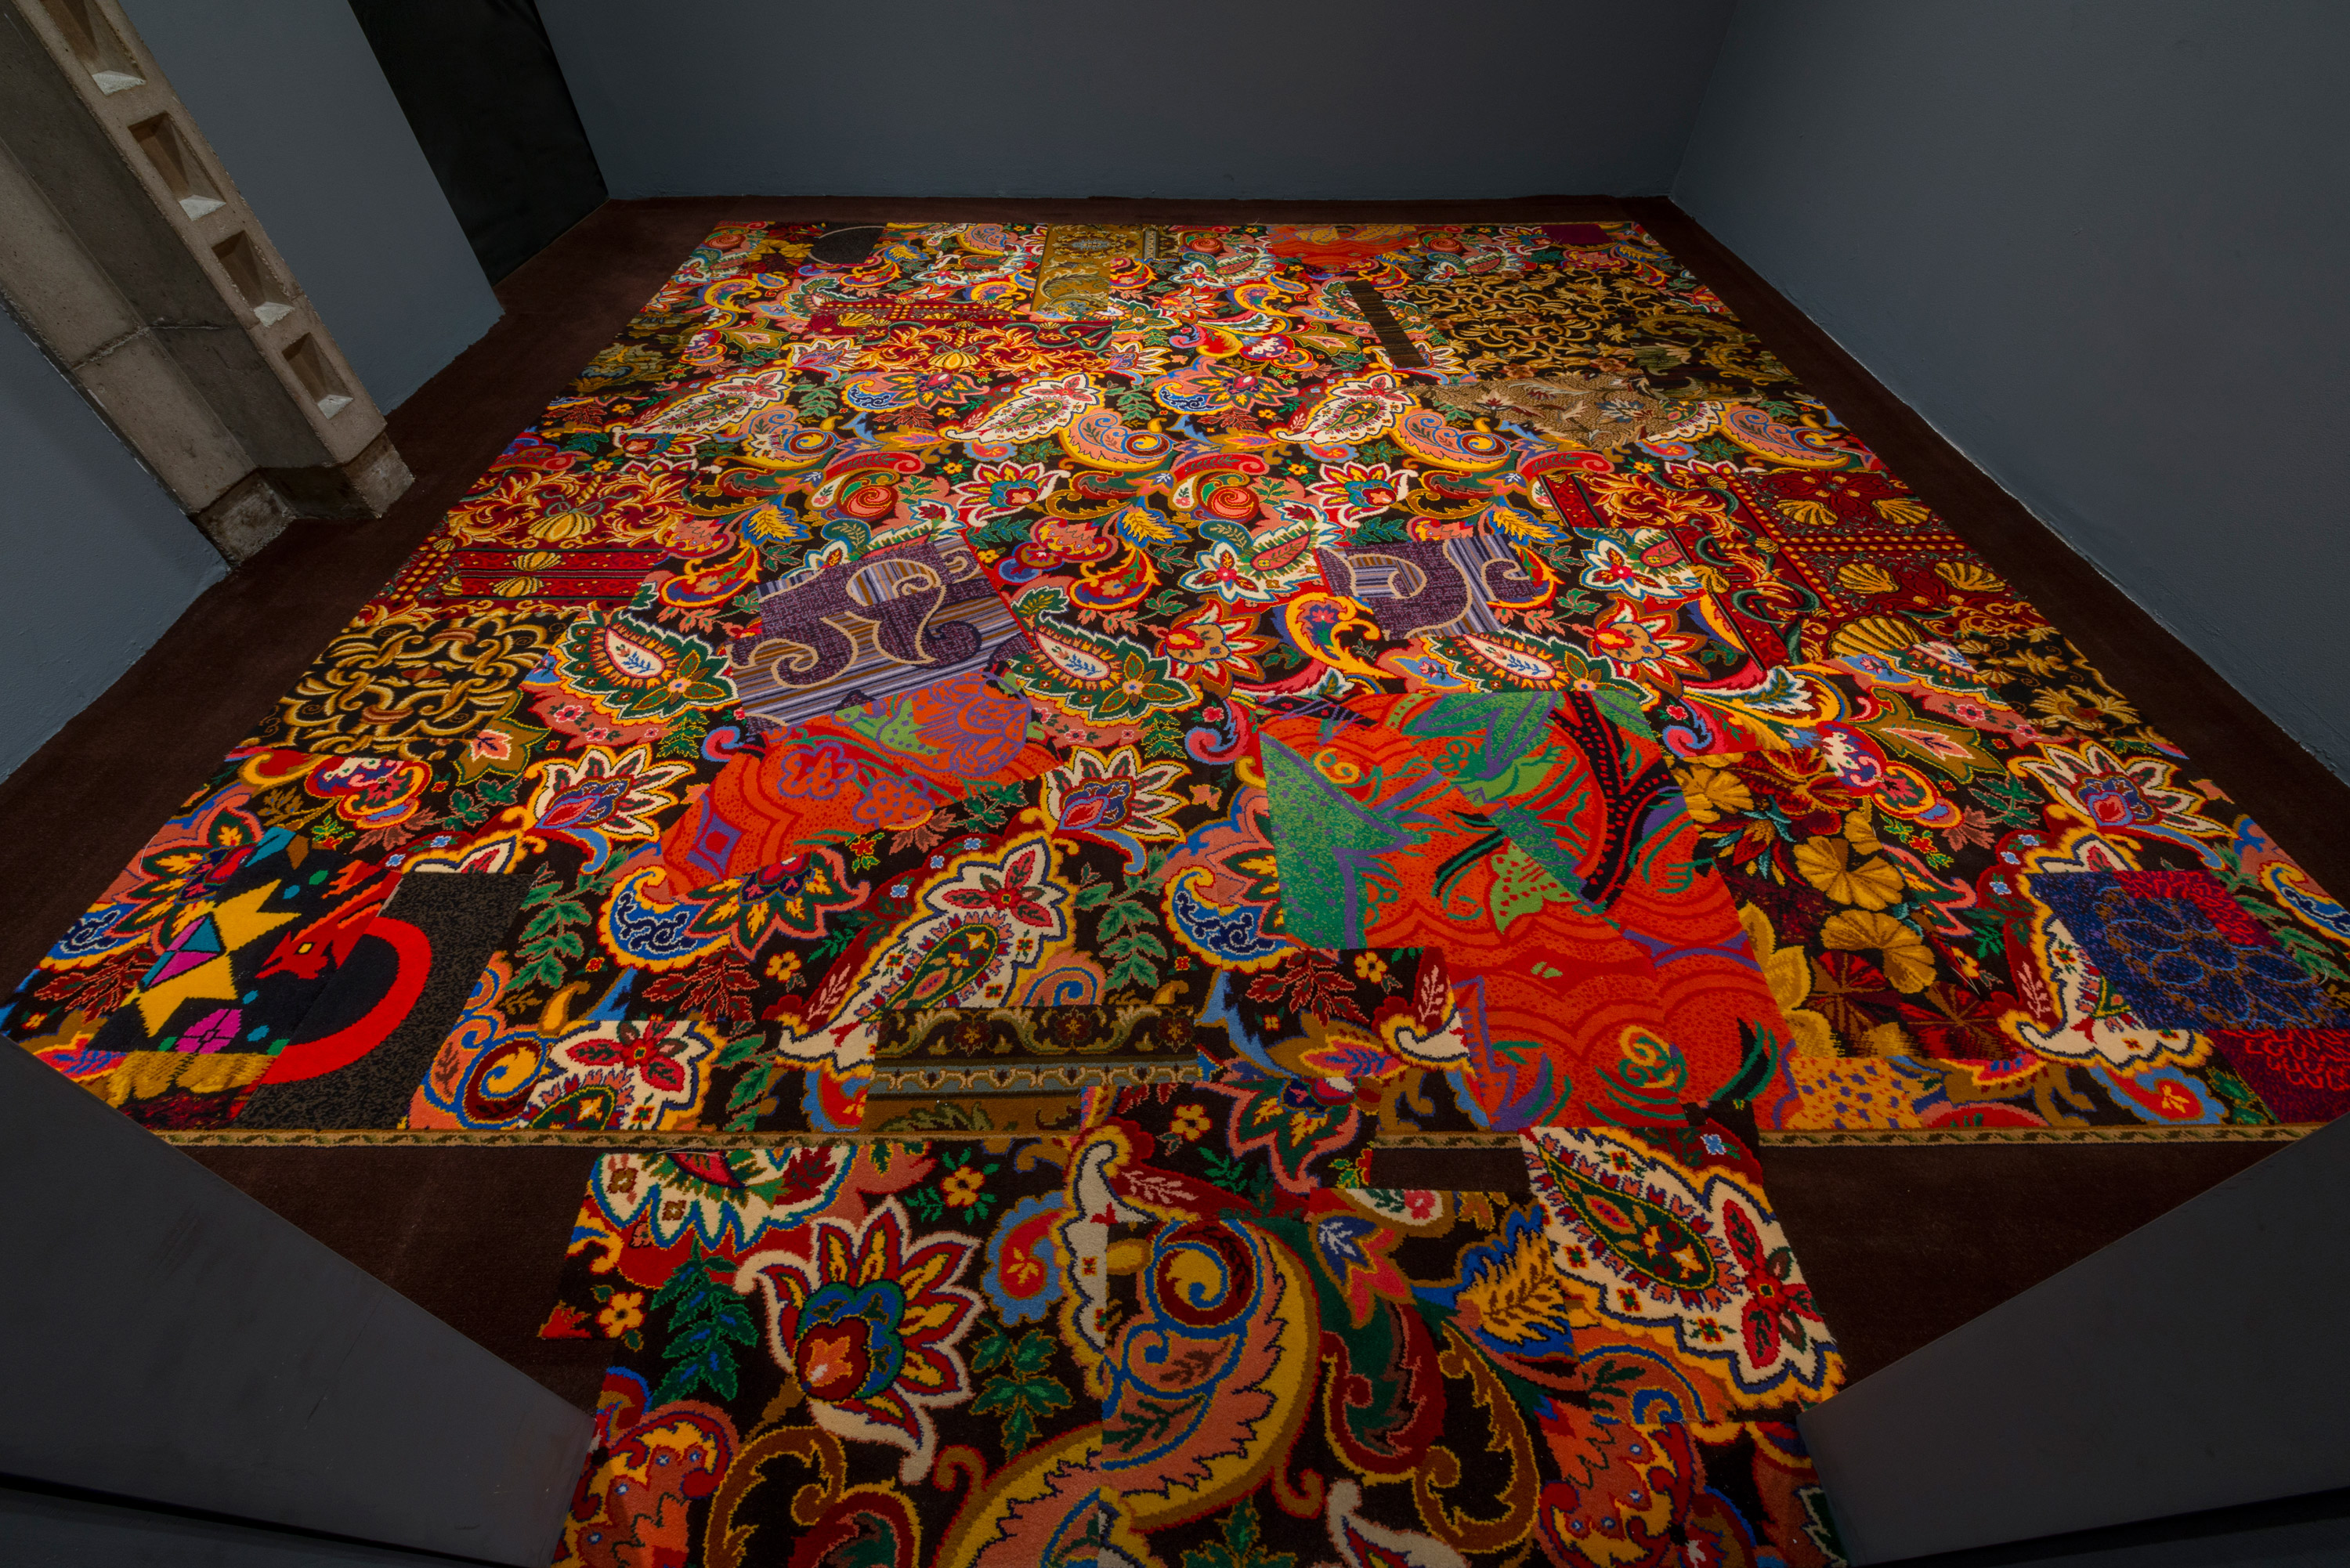 Cayetano Ferrer, Swatch for Remnant Recomposition, 2012, casino carpet, seam tape